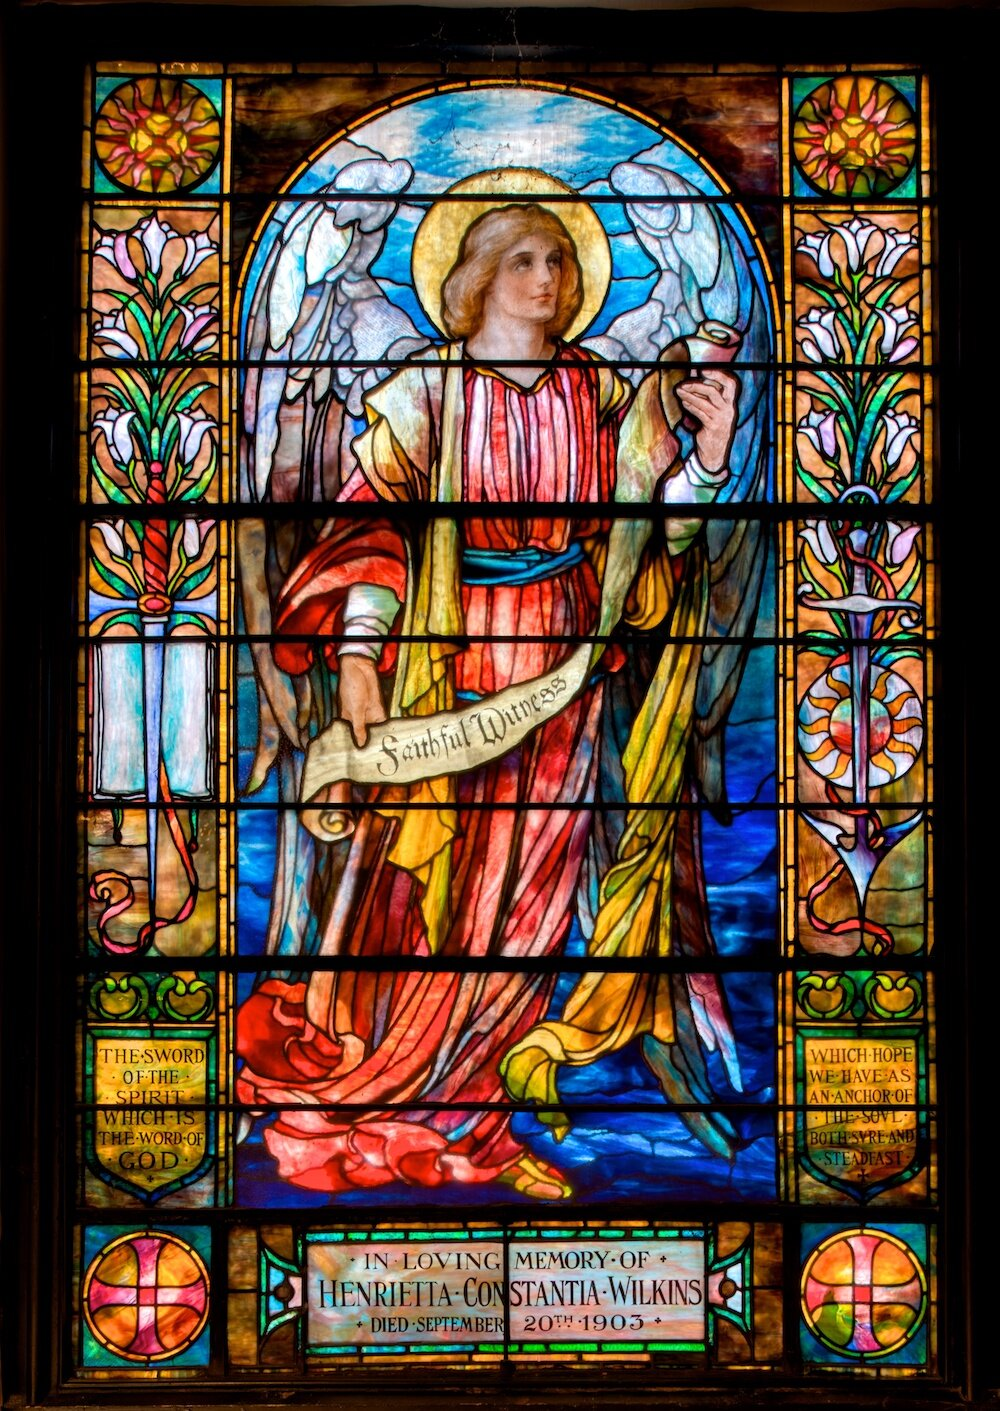 Armstrong Maitland, Faithful Witness-Angel honoring the sword of the spirit and anchor of the soul, c. 1903